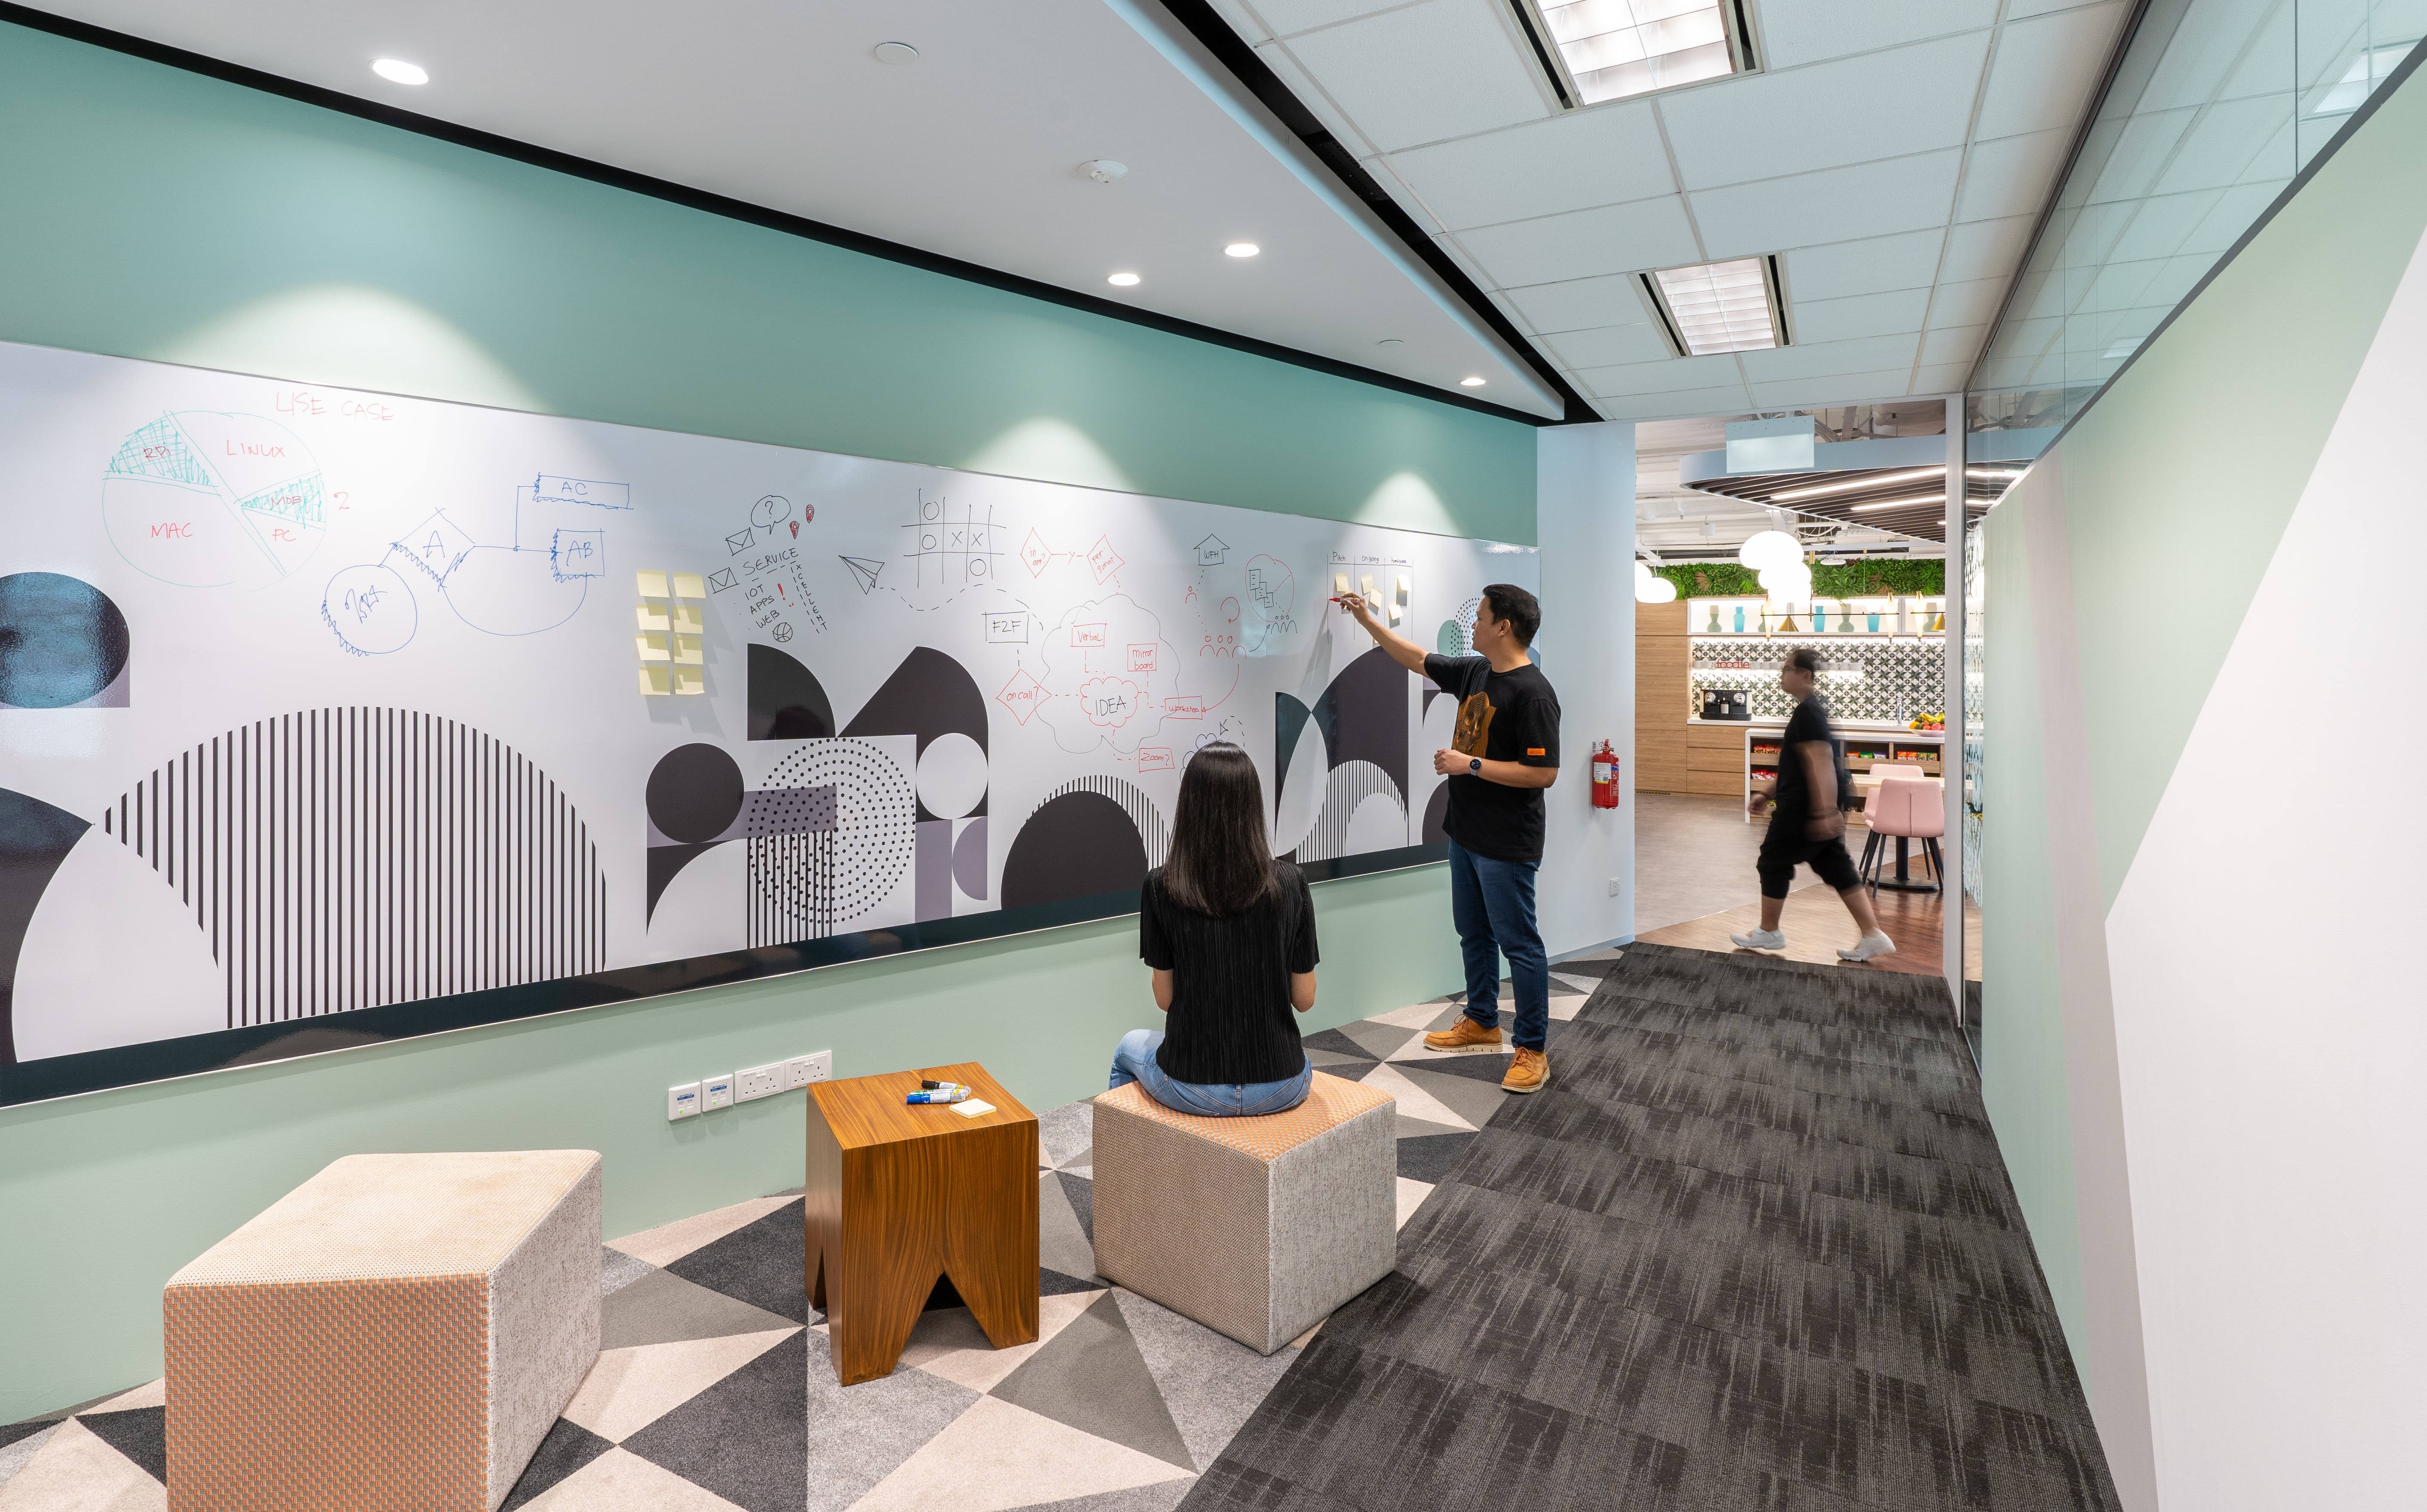 Space Matrix designed human moments into the workplace for an international tech firm in Singapore